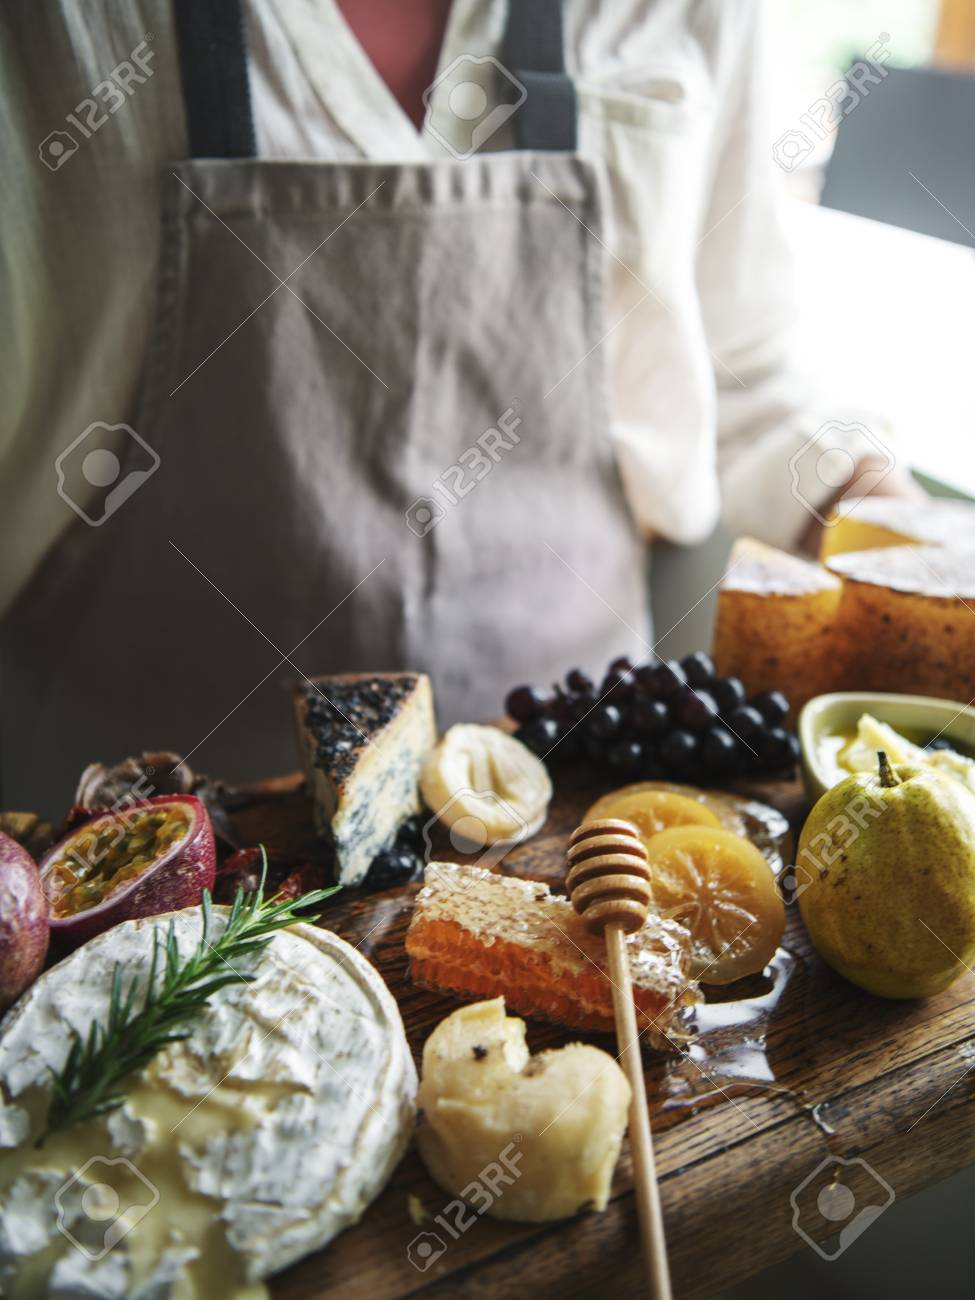 Cheese Board Food Photography Recipe Idea Stock Photo Picture And Royalty Free Image Image 112058959